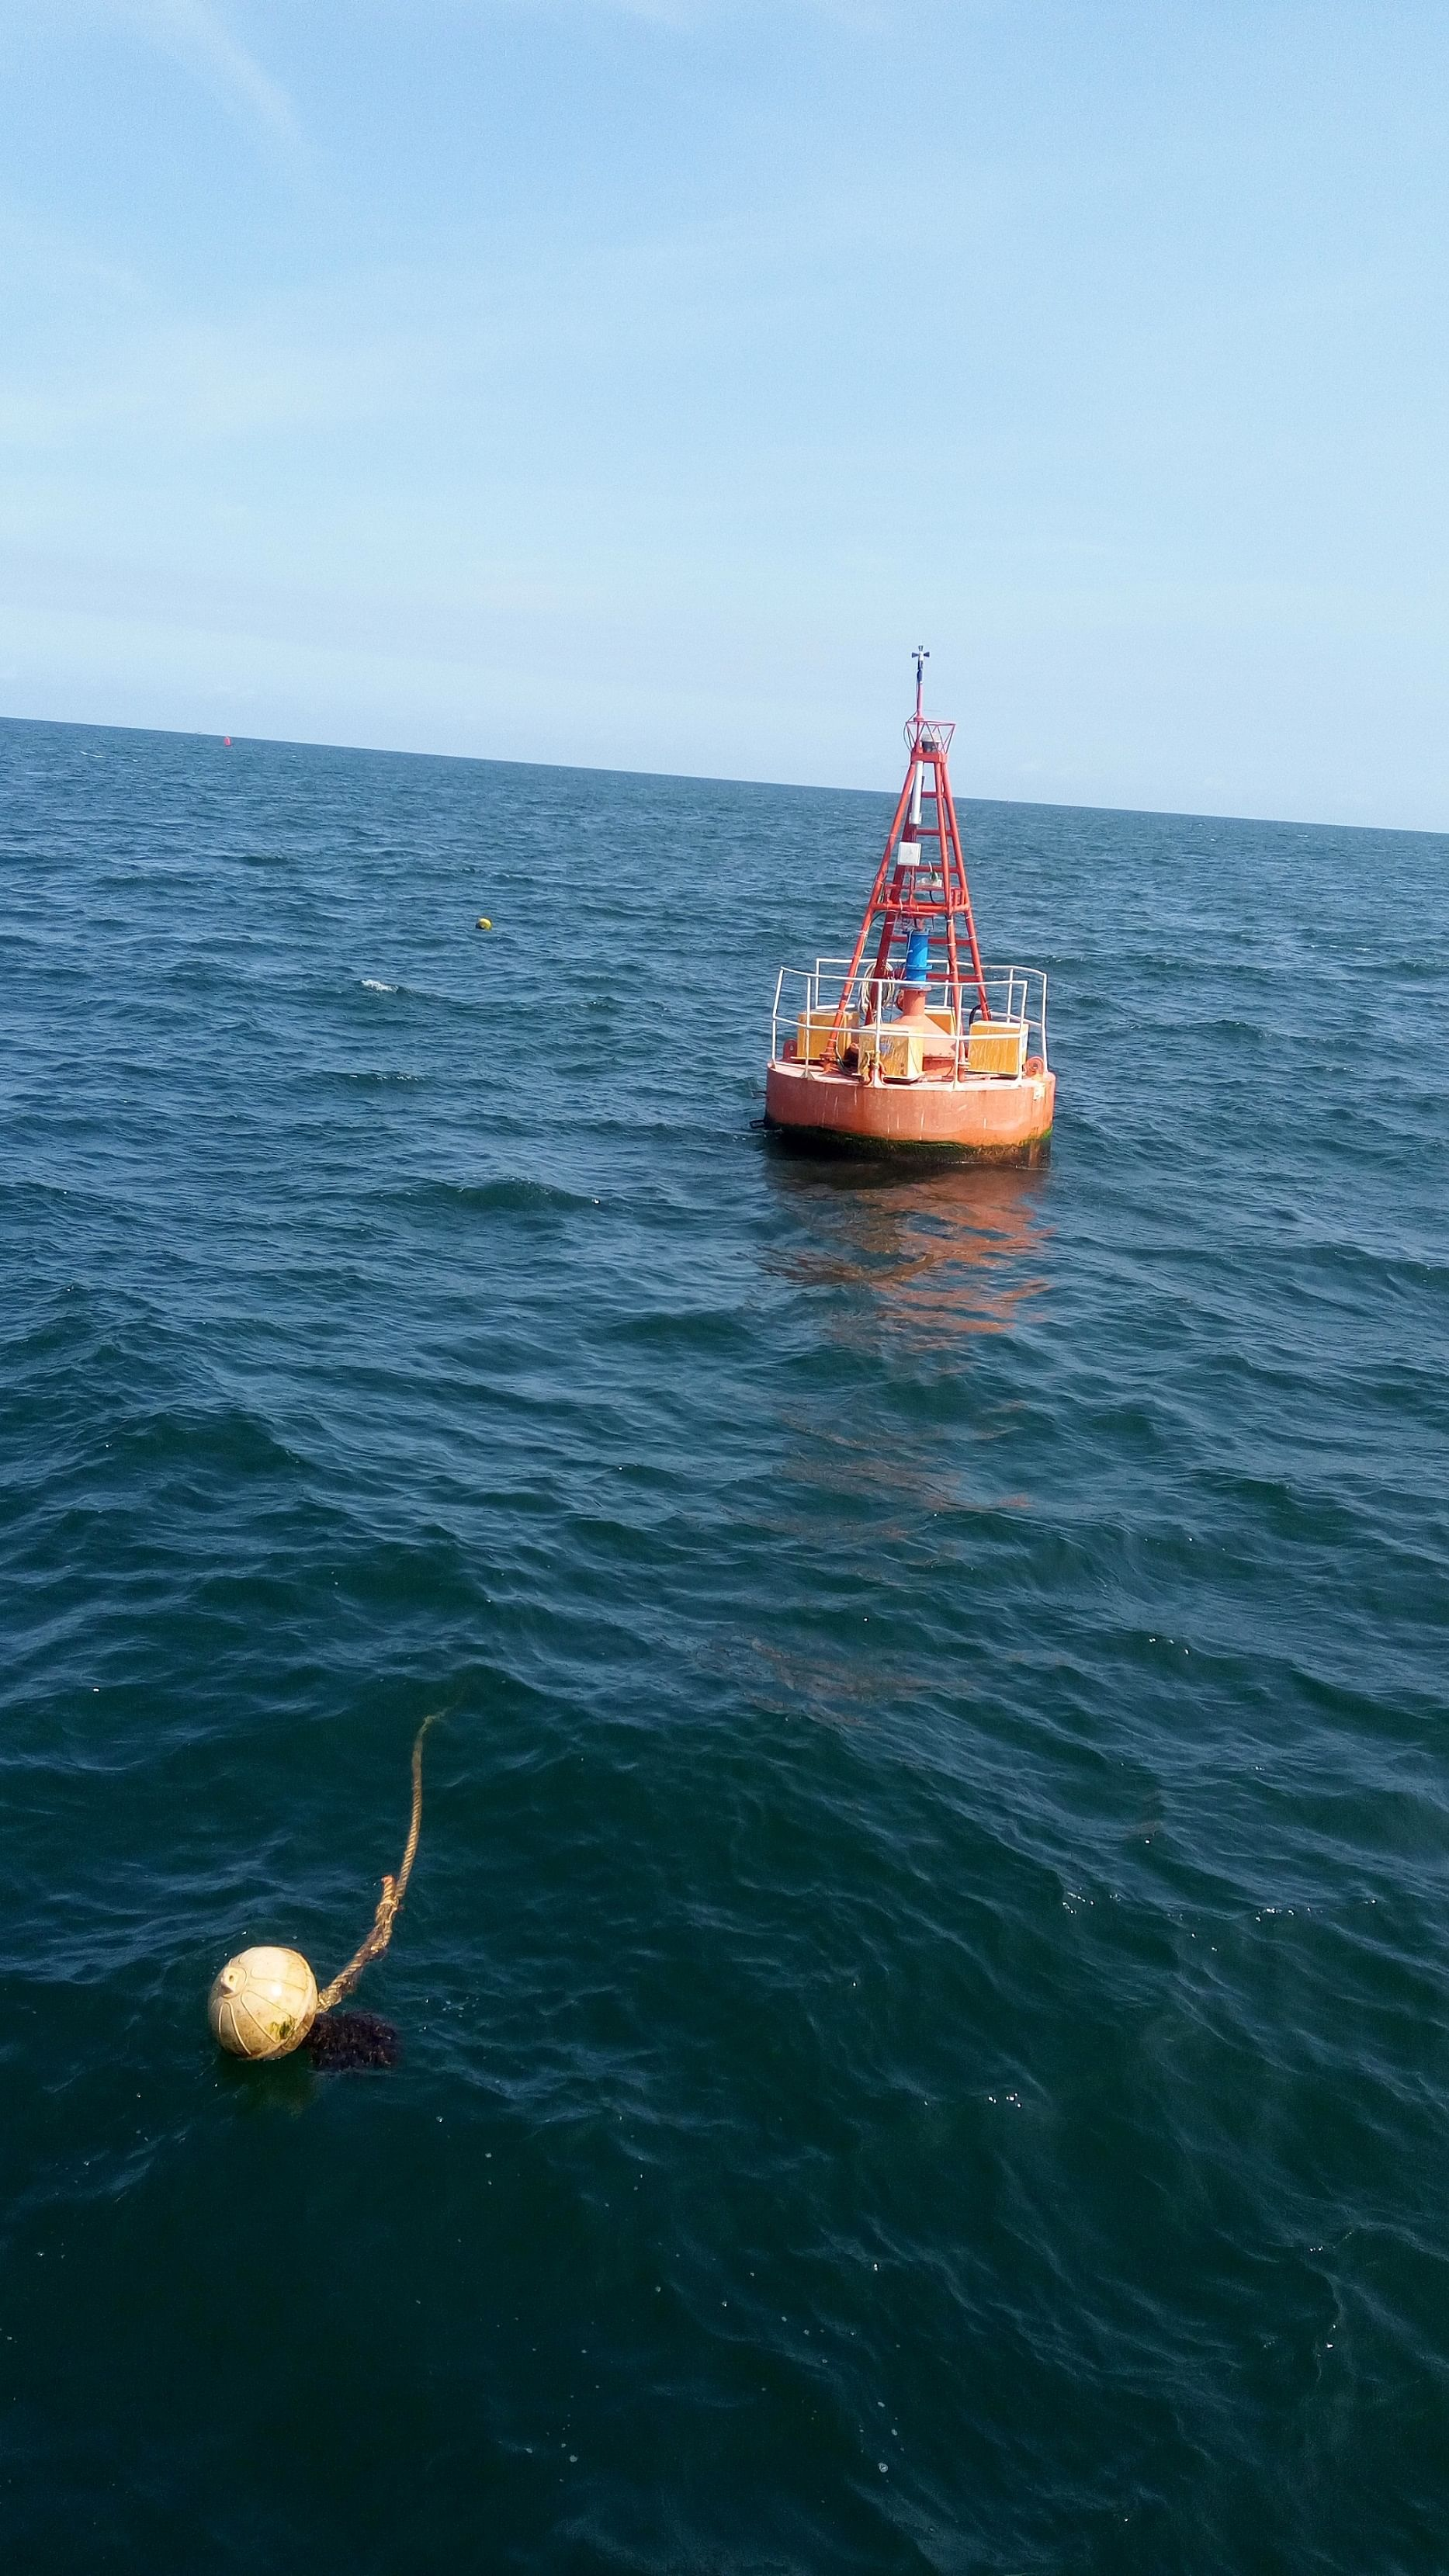 The turbine in the NIOT's Floating wave powered navigational buoy.